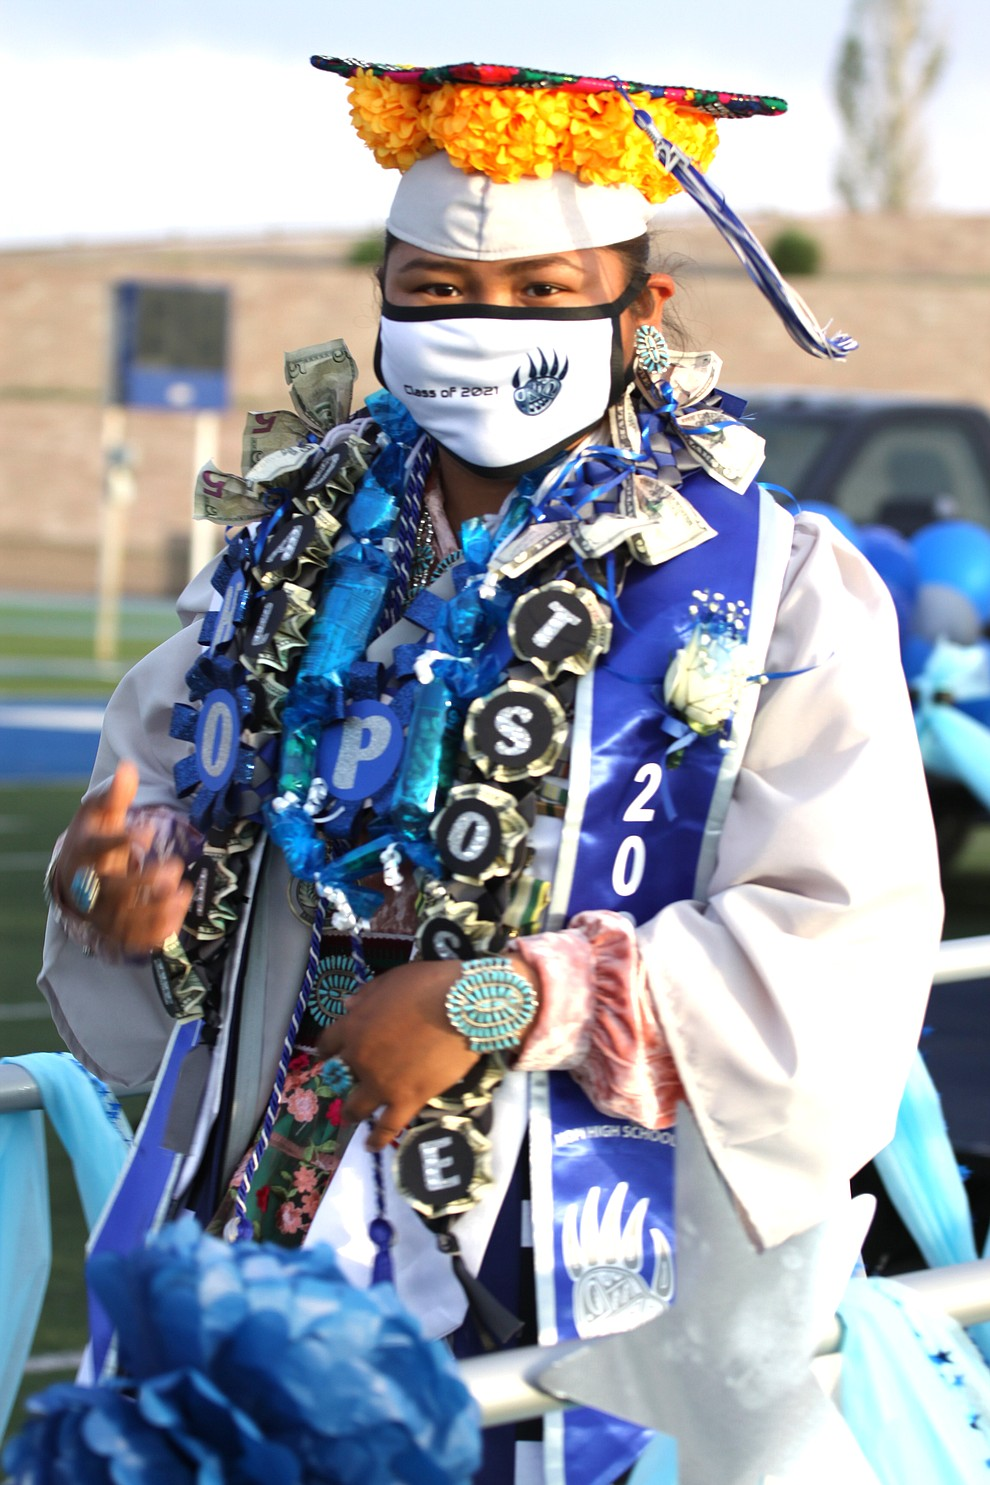 Hopi High graduate Dalilah Tsosie joined her classmates as they celebrated the 2021 graduation at Hopi High School June 15 in Polacca, Arizona. (Photo courtesy of Valerie Martin)